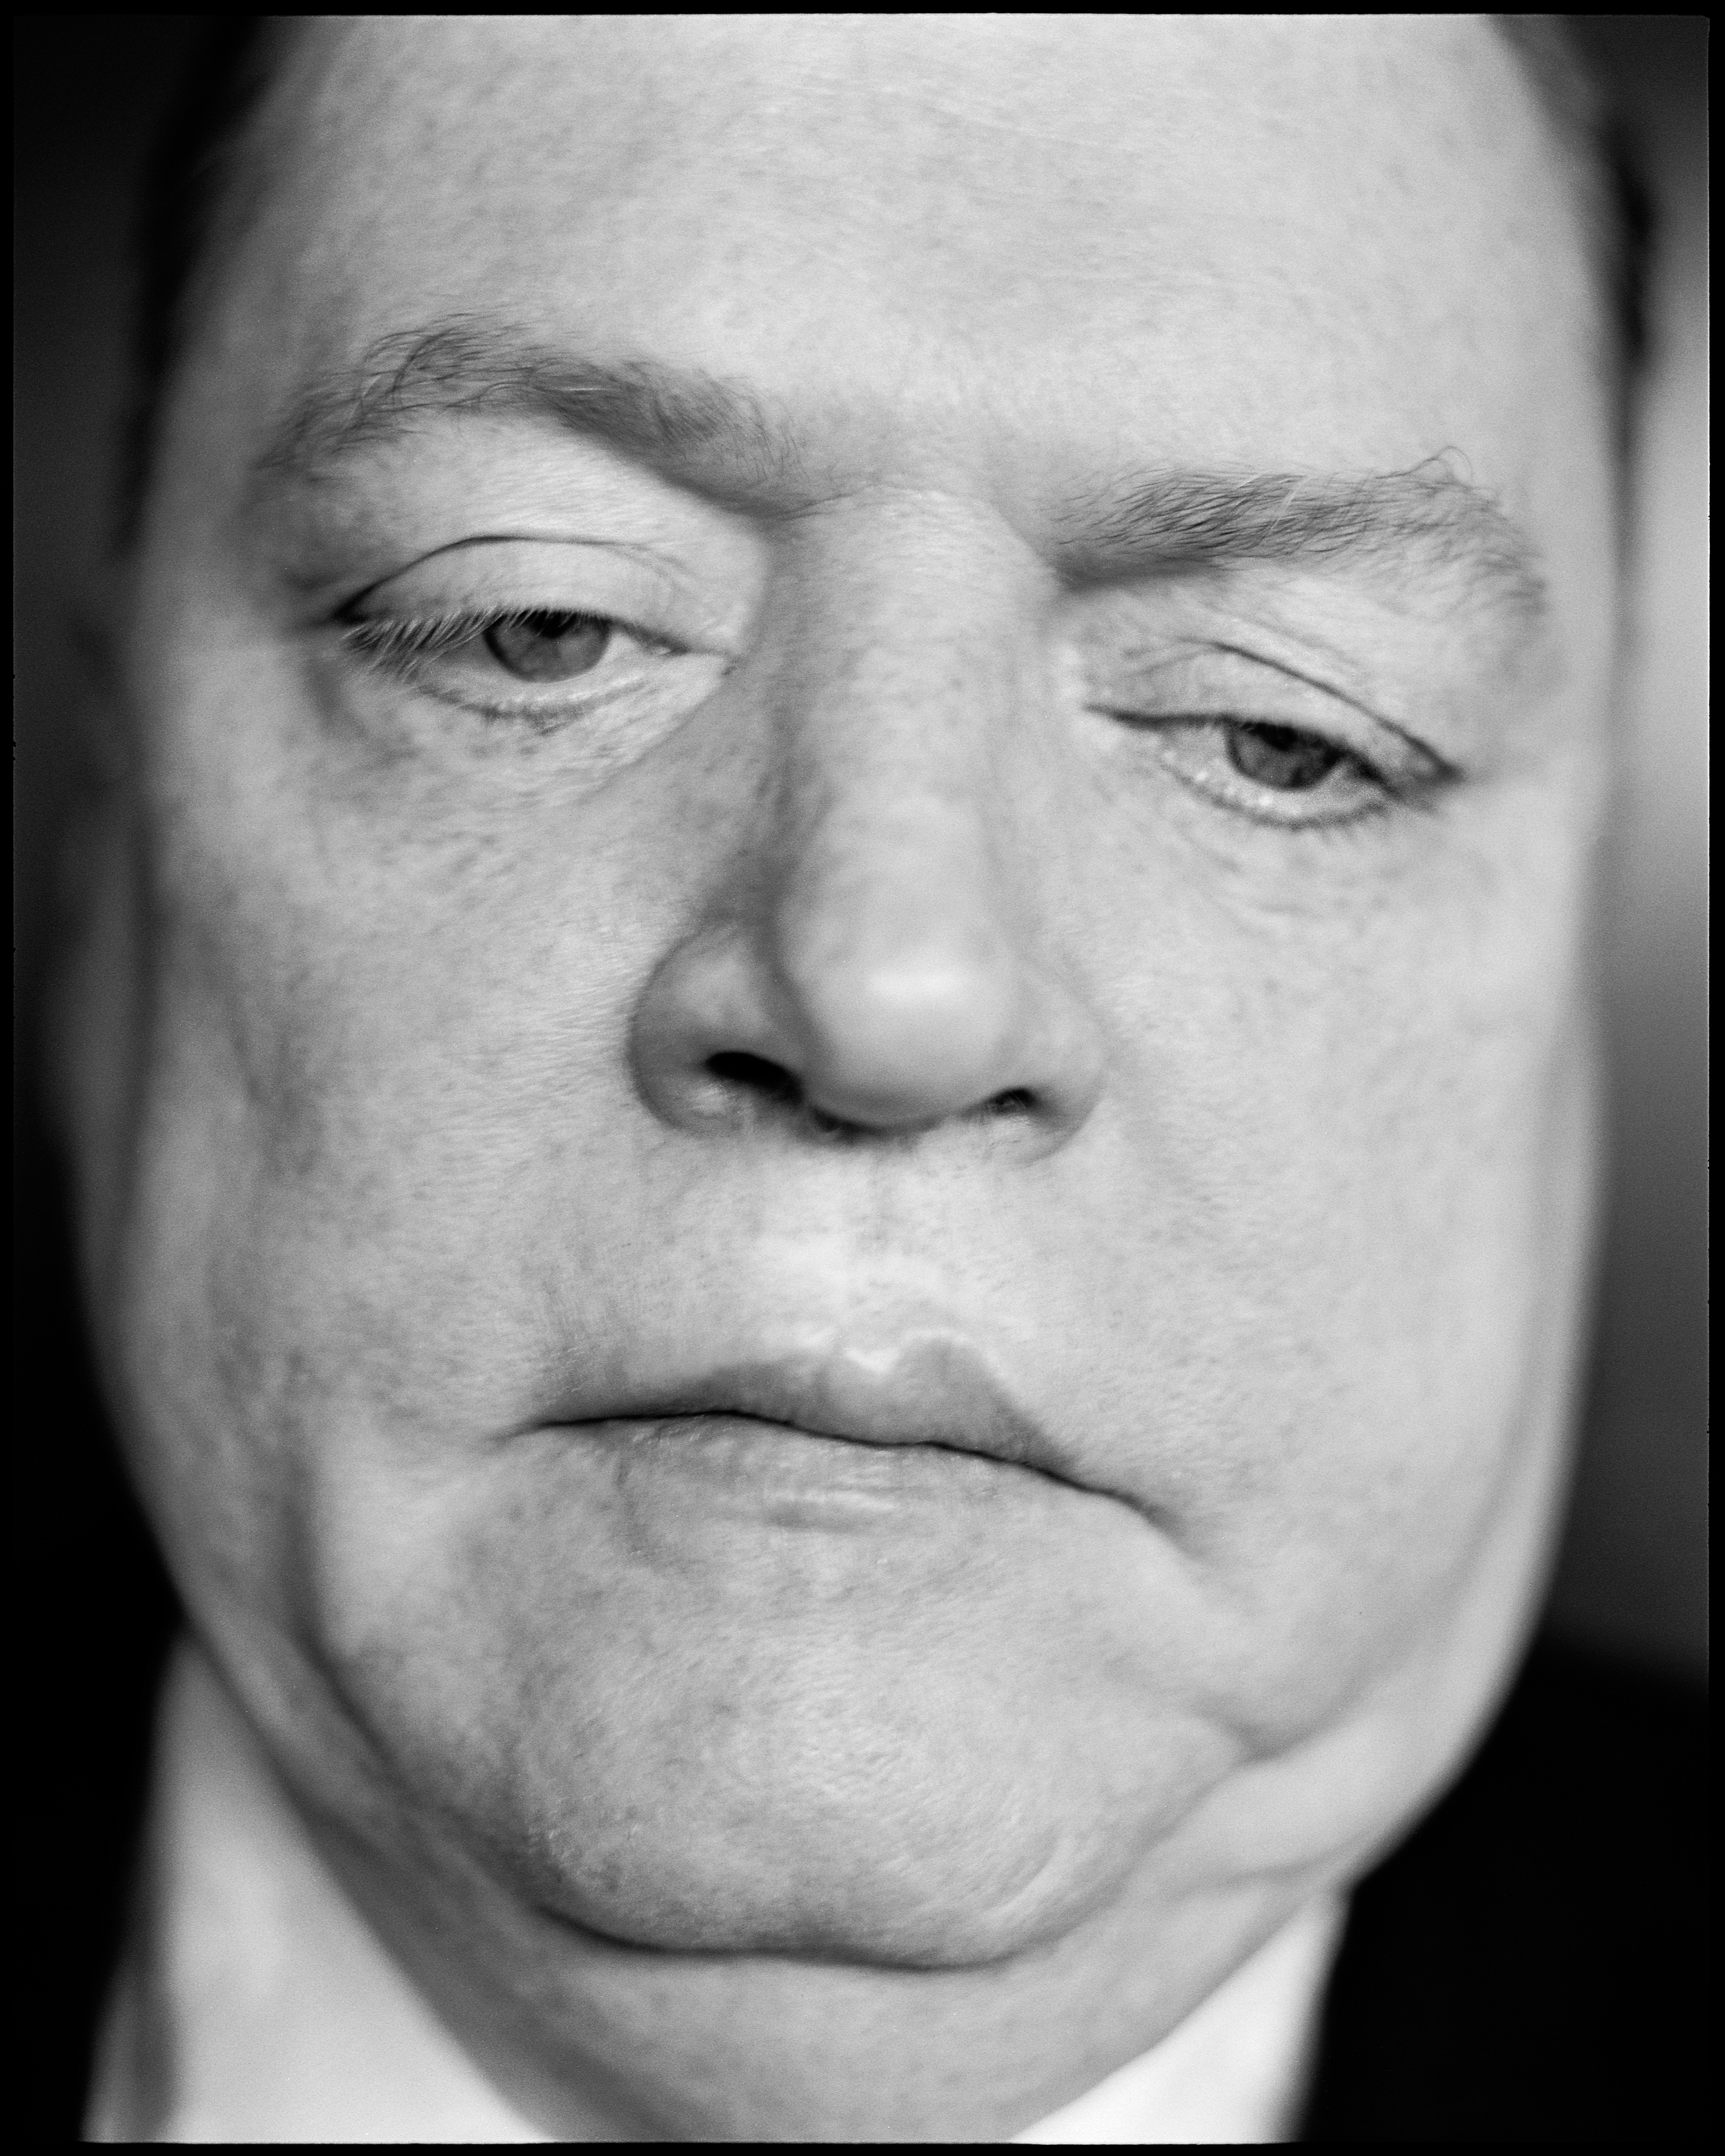 Larry Flynt the publisher of Hustler Magazine     photographed by Patrik Andersson   in Los Angeles California